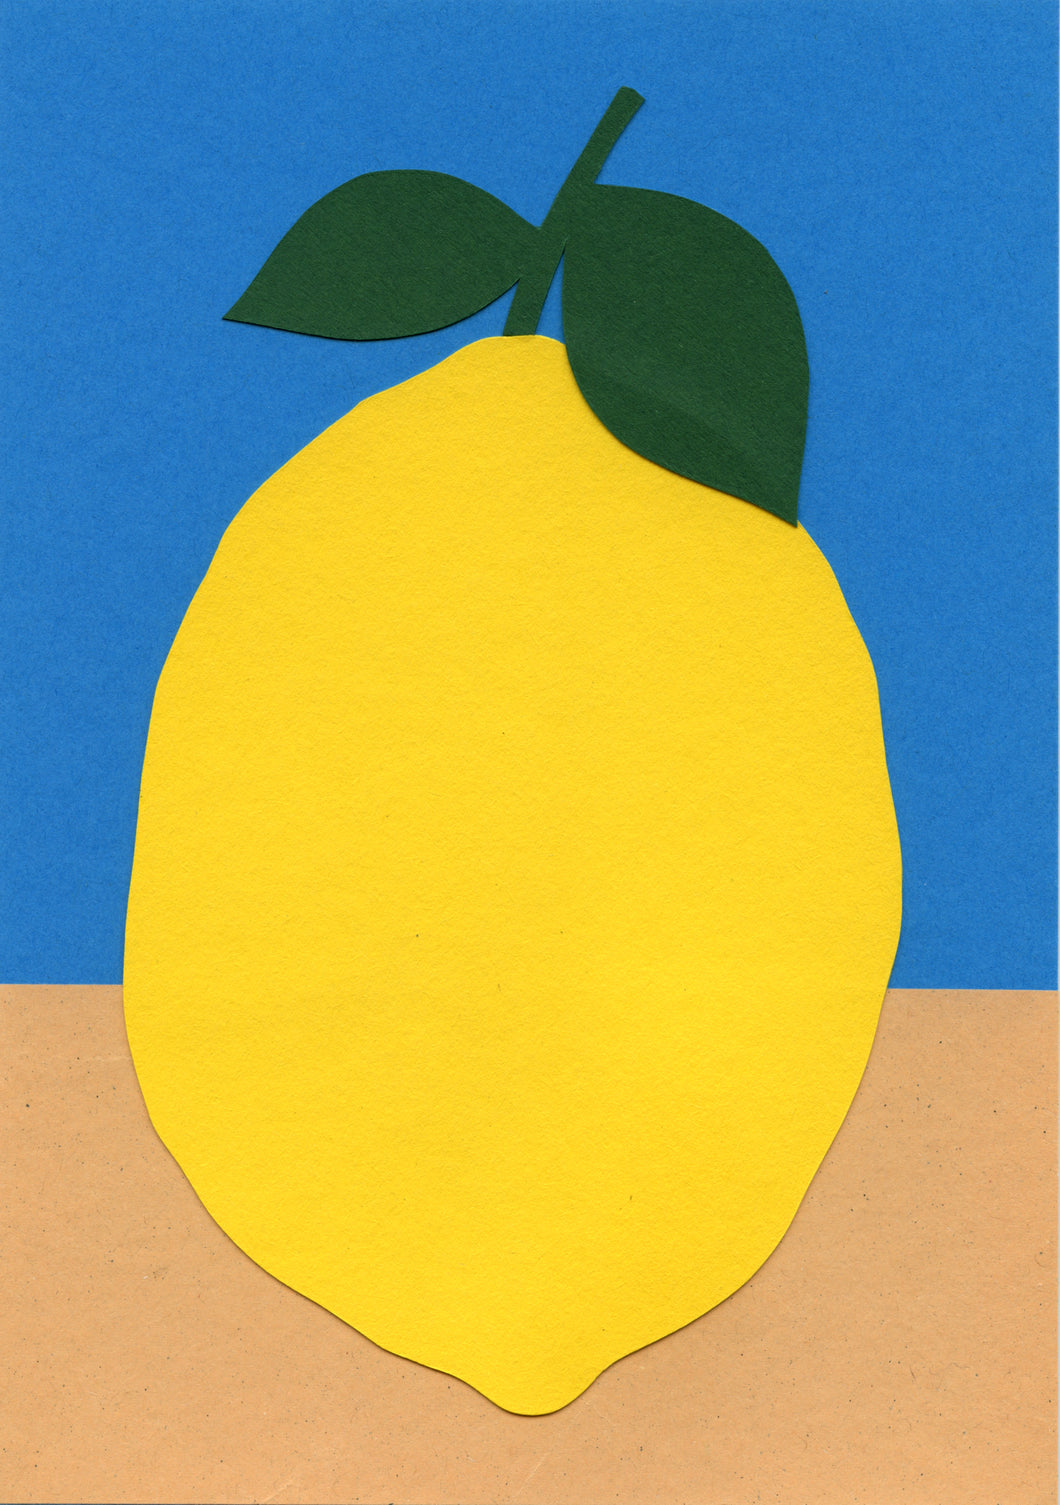 Handmade Paper Cut Out – Paper Lemon #5